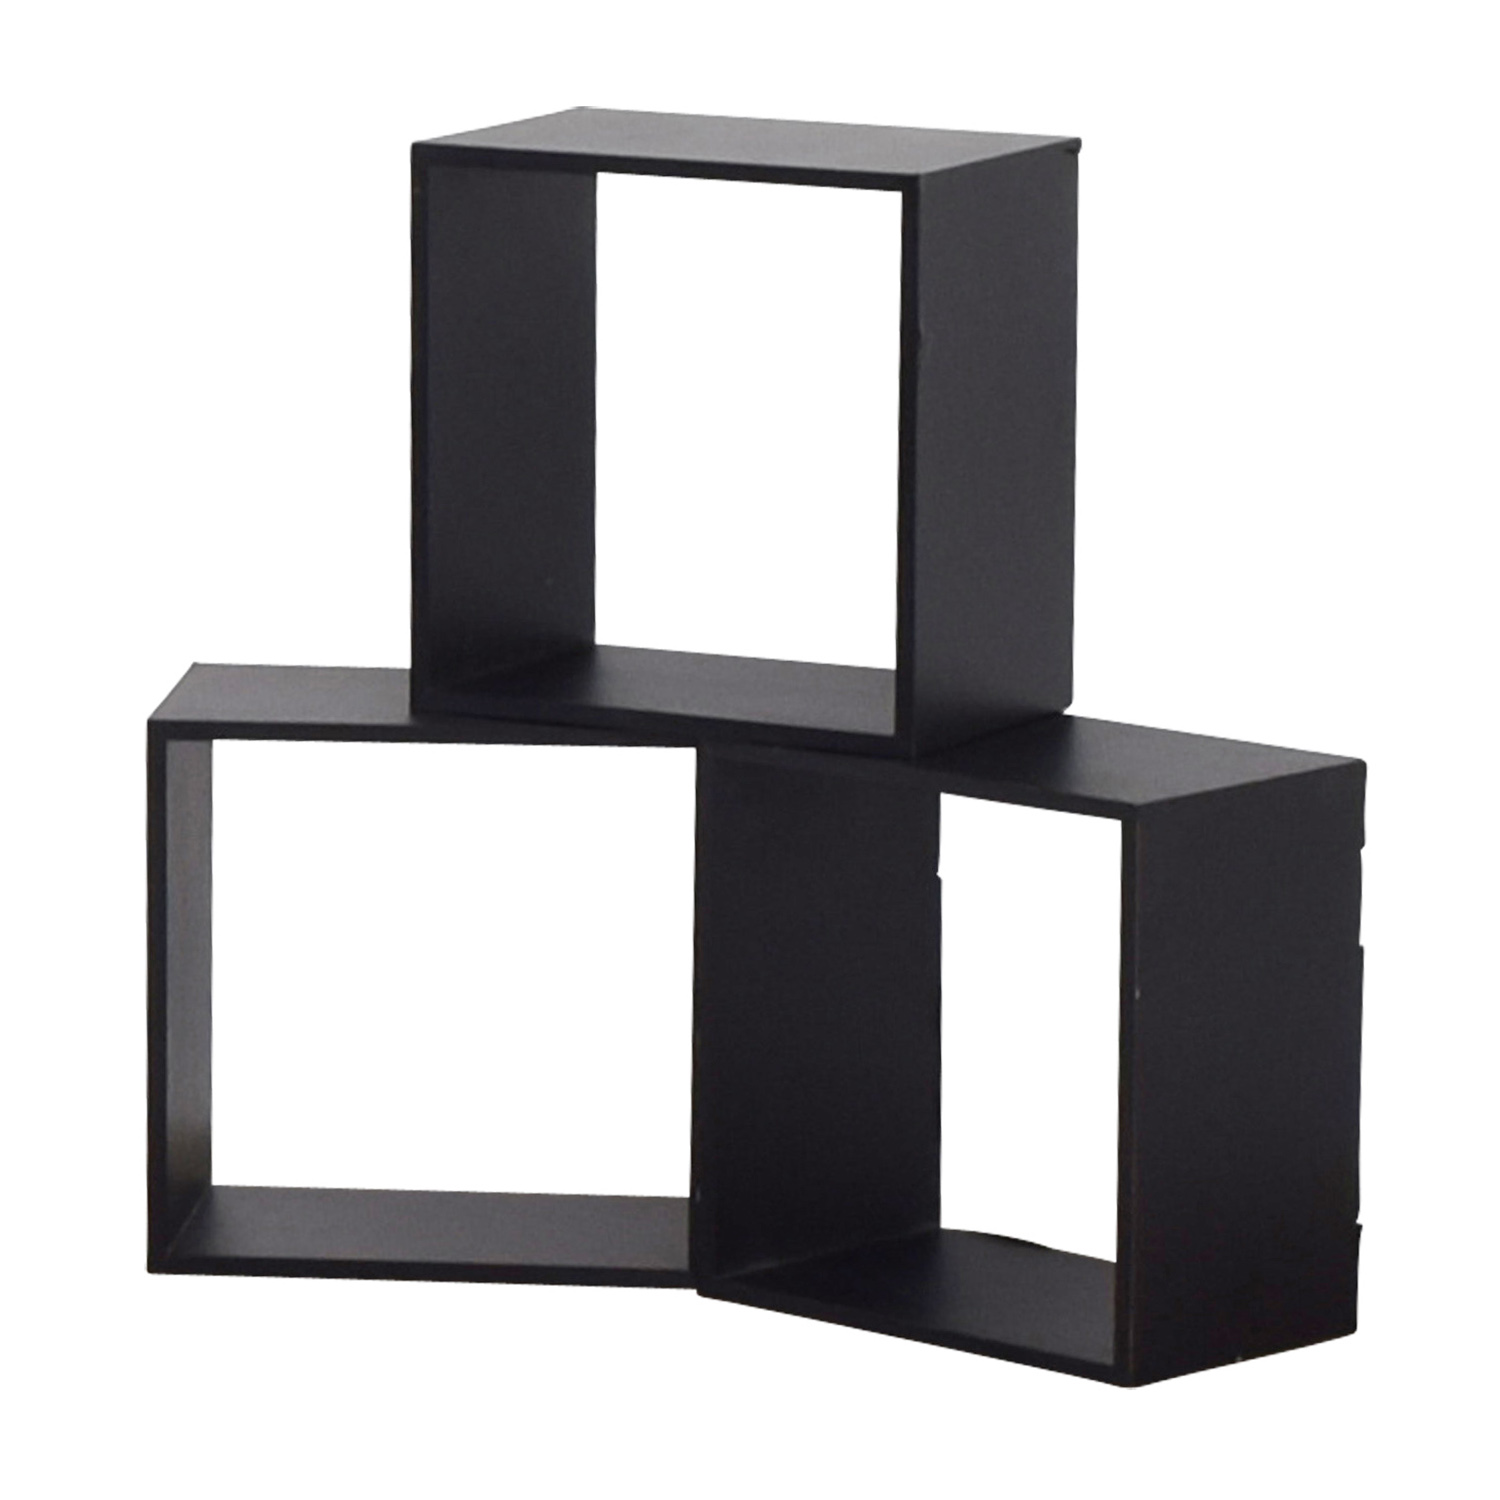 ... Black Decorative Wall Box Shelves Nj ...